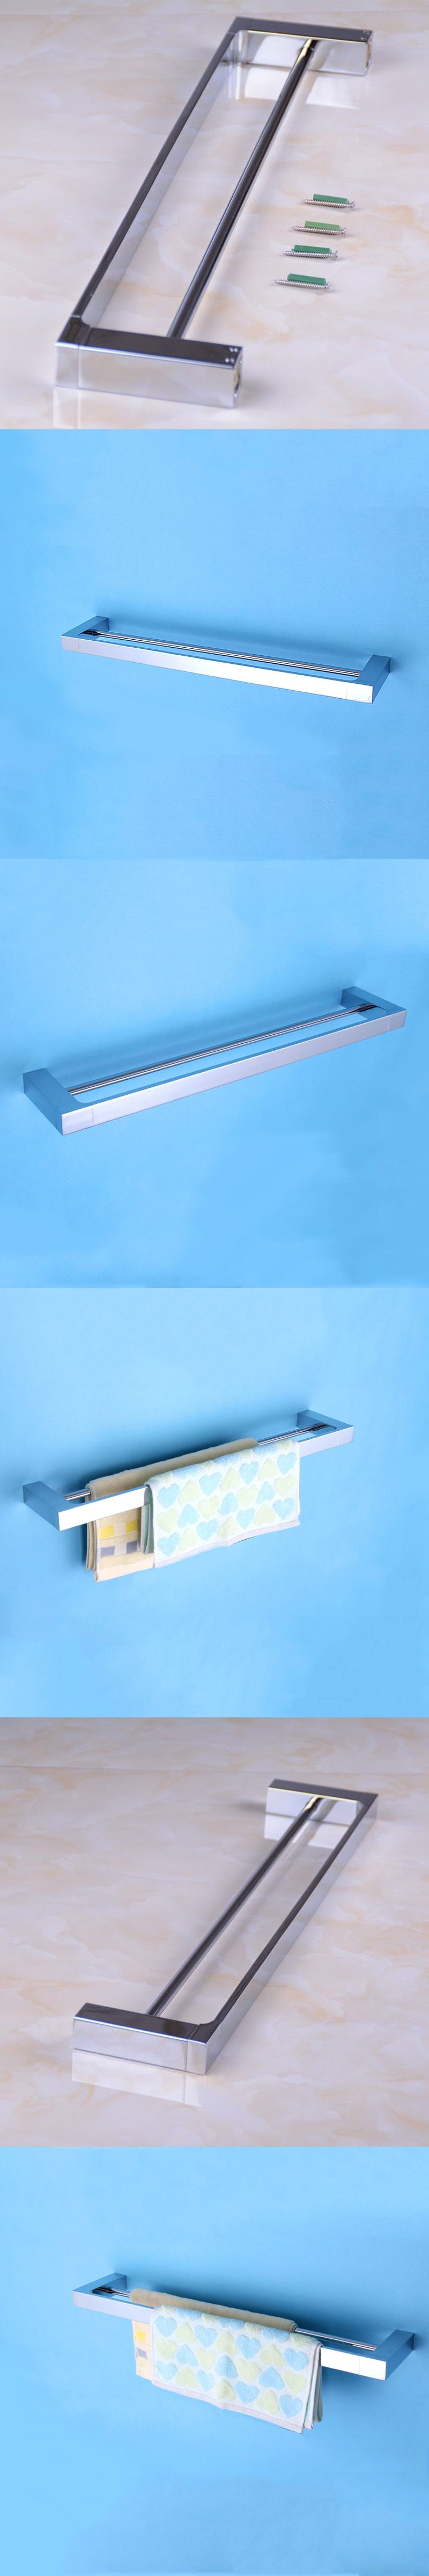 Bathroom Chrome Double Towel Shelves Antique Brass Wall Mounted ...